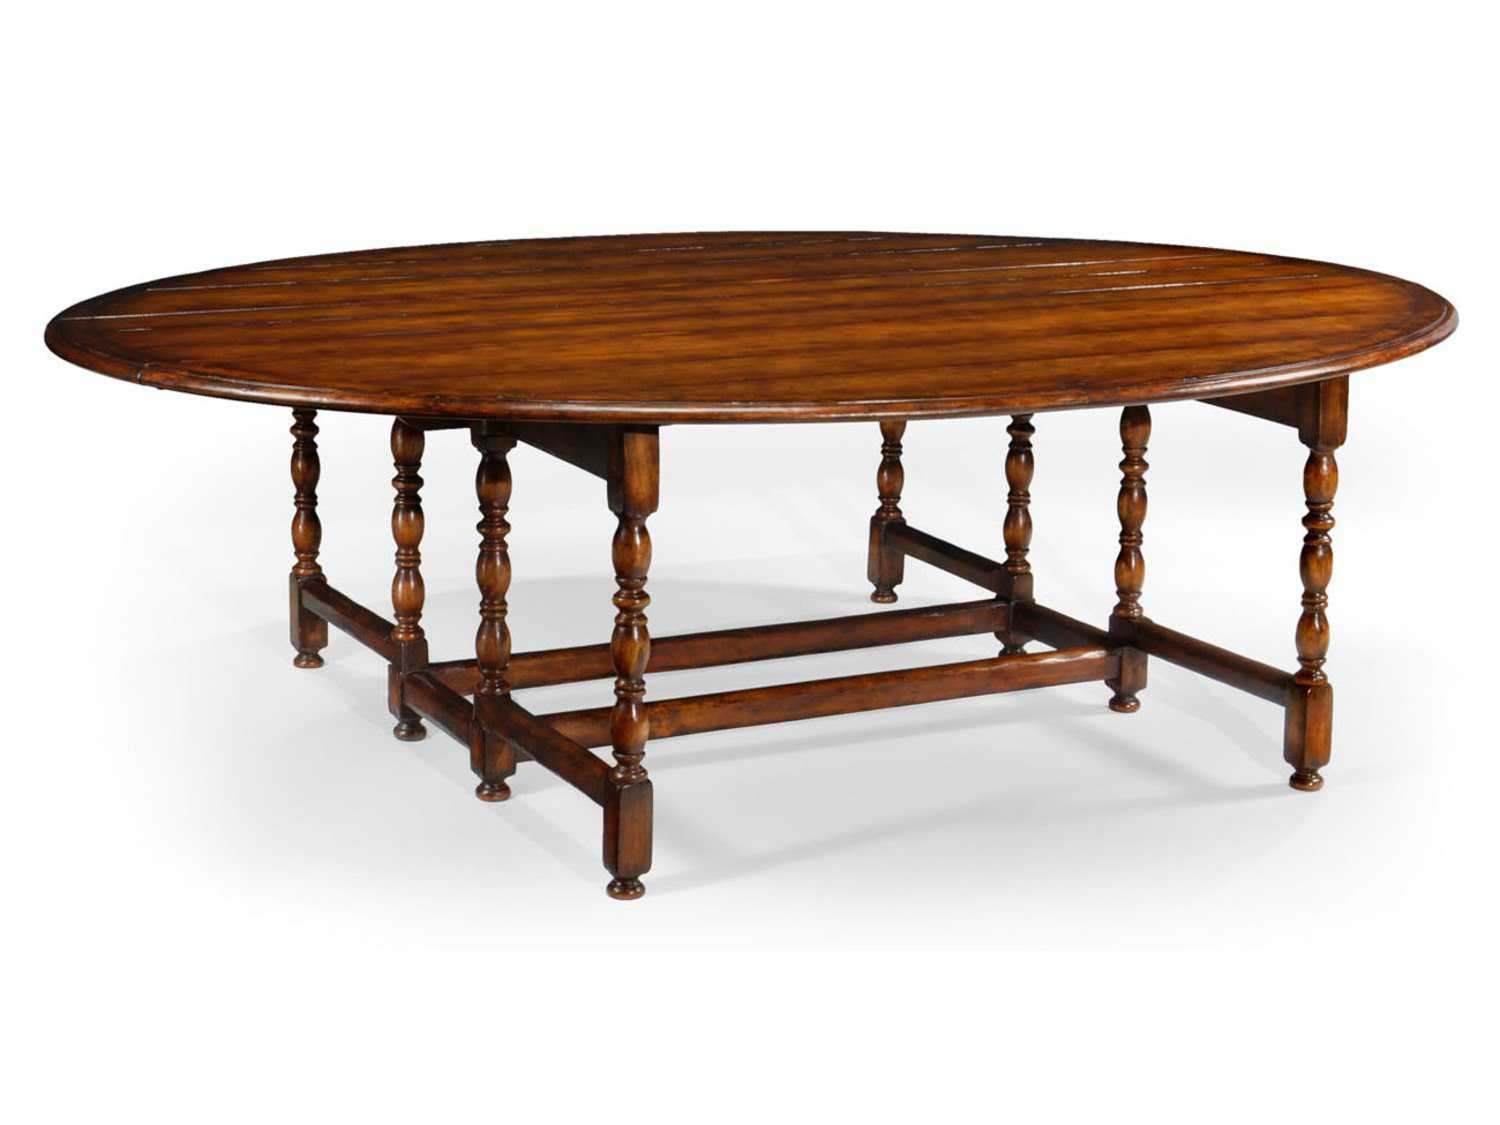 Jonathan Charles Country Farmhouse Medium Walnut 102 5 x 21 75 Oval Dining Ta